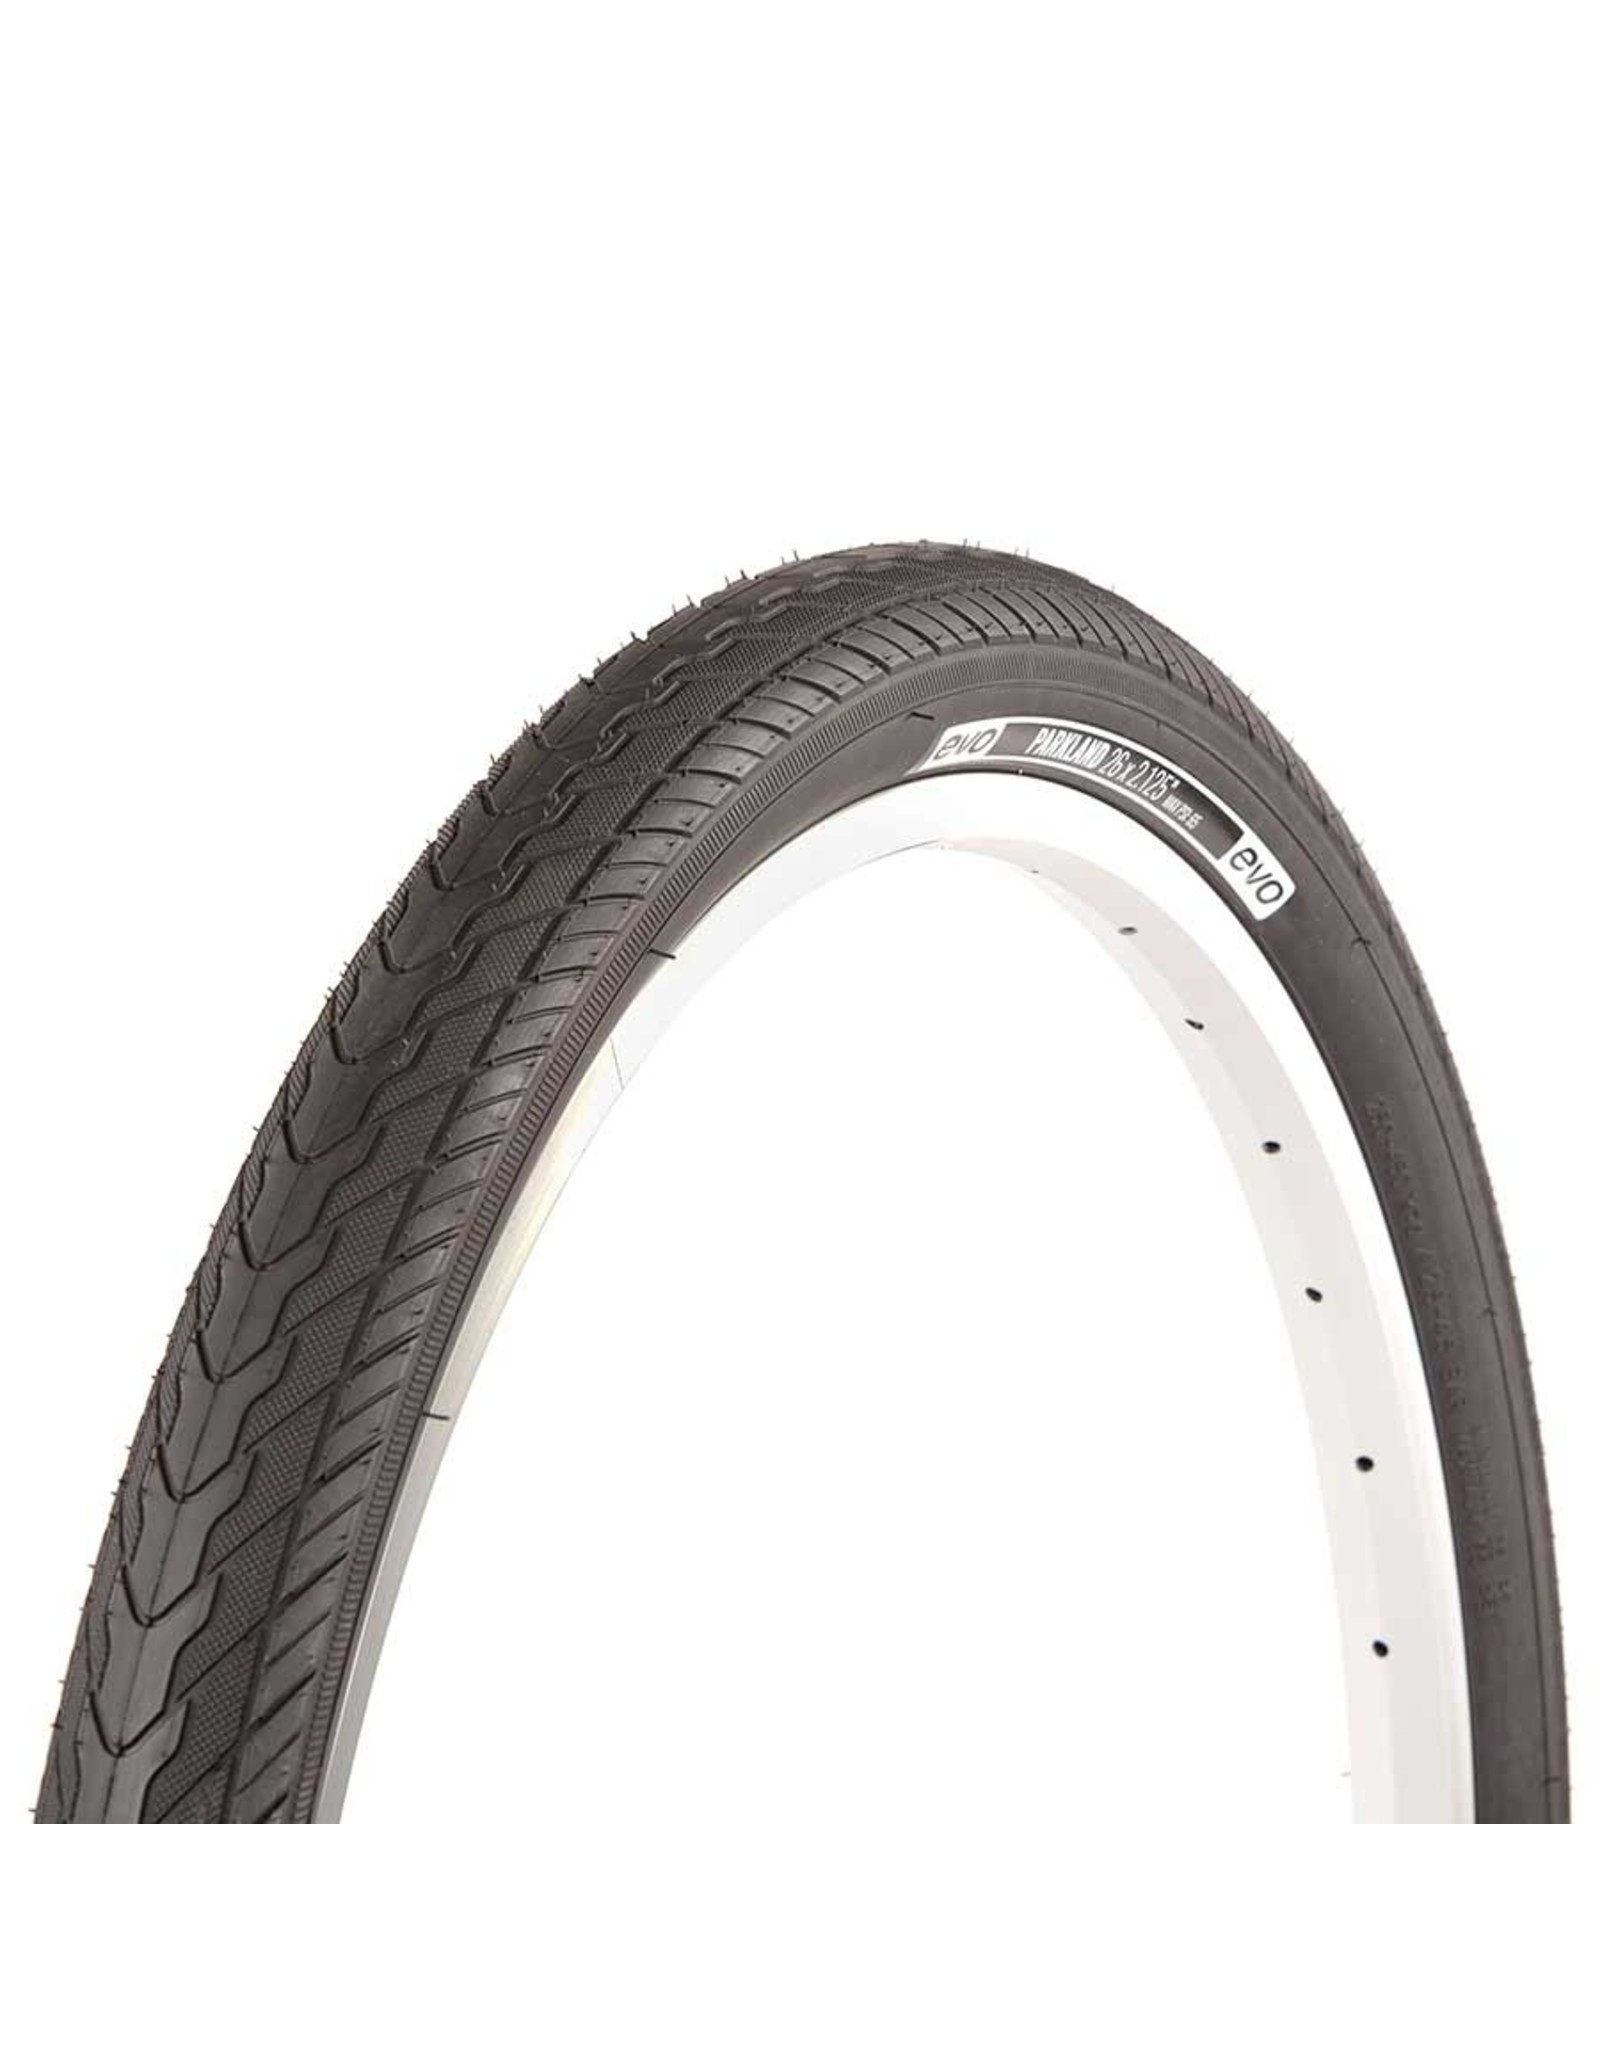 EVO, Parkland, Tire, 26''x1.75, Wire, Clincher, Black